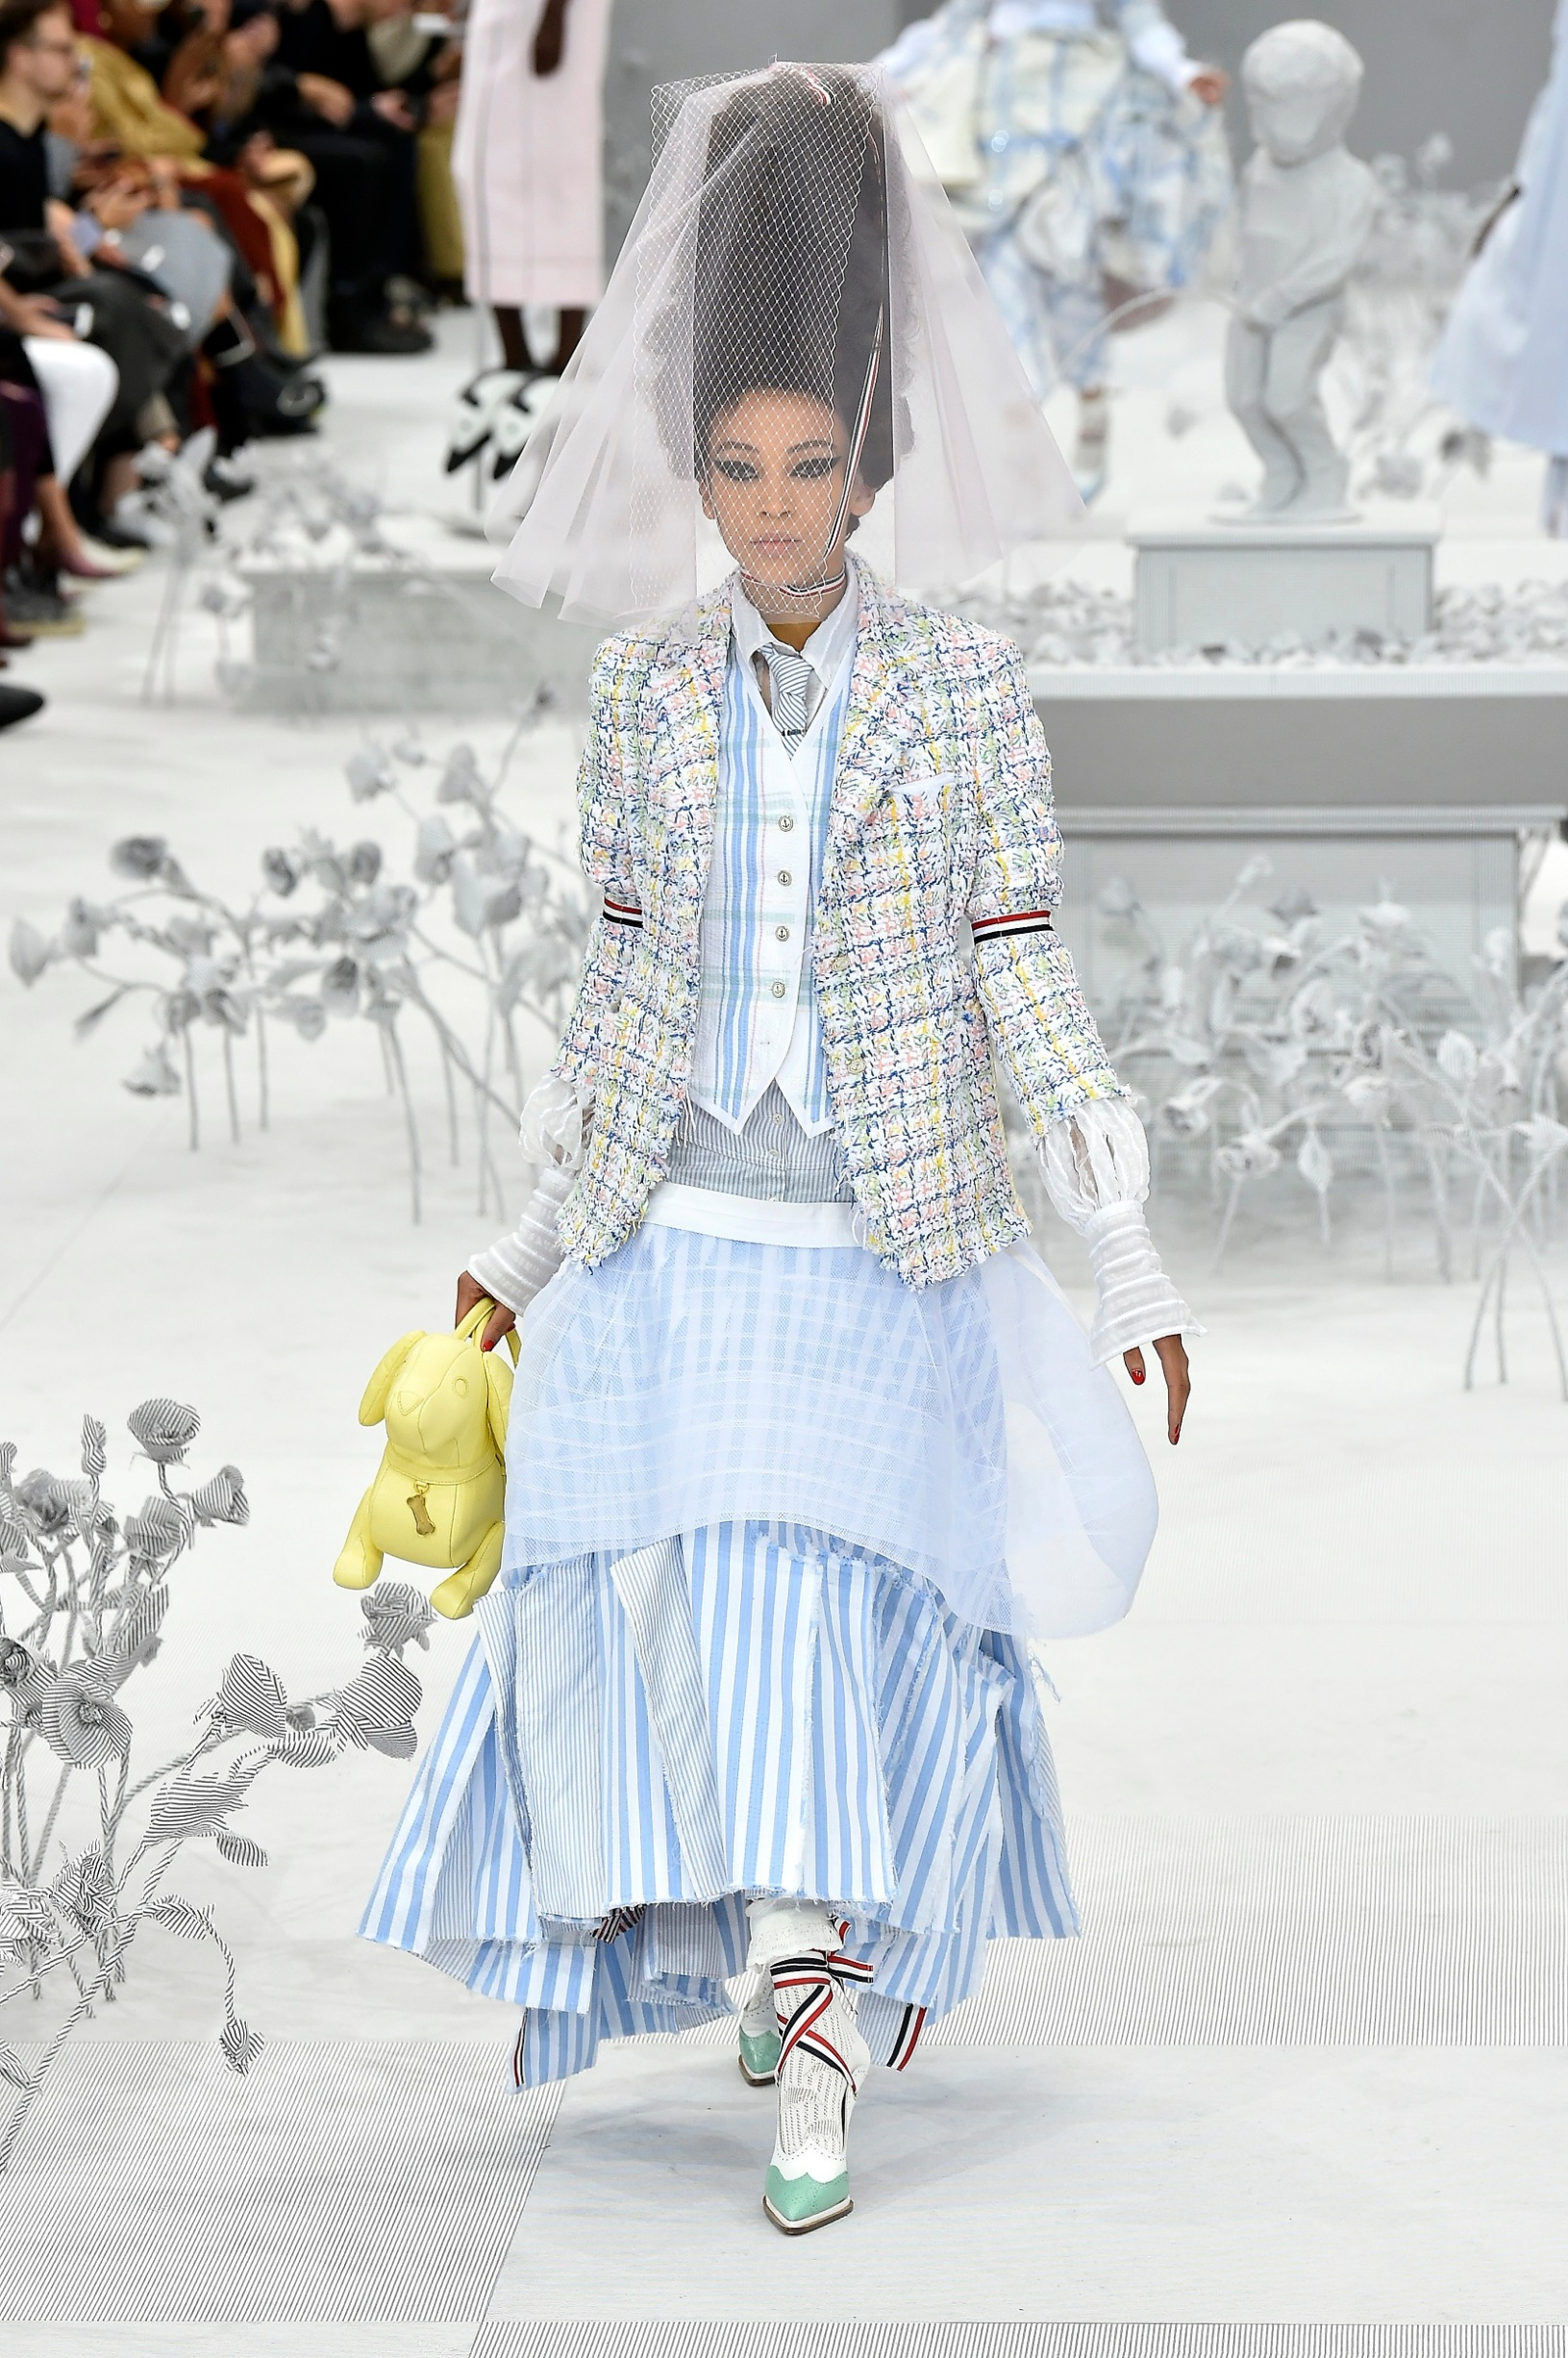 PARIS, FRANCE - SEPTEMBER 29: A model walks the runway during the Thom Browne Womenswear Spring/Summer 2020 show as part of Paris Fashion Week on September 29, 2019 in Paris, France. (Photo by Aurelien Meunier/Getty Images)